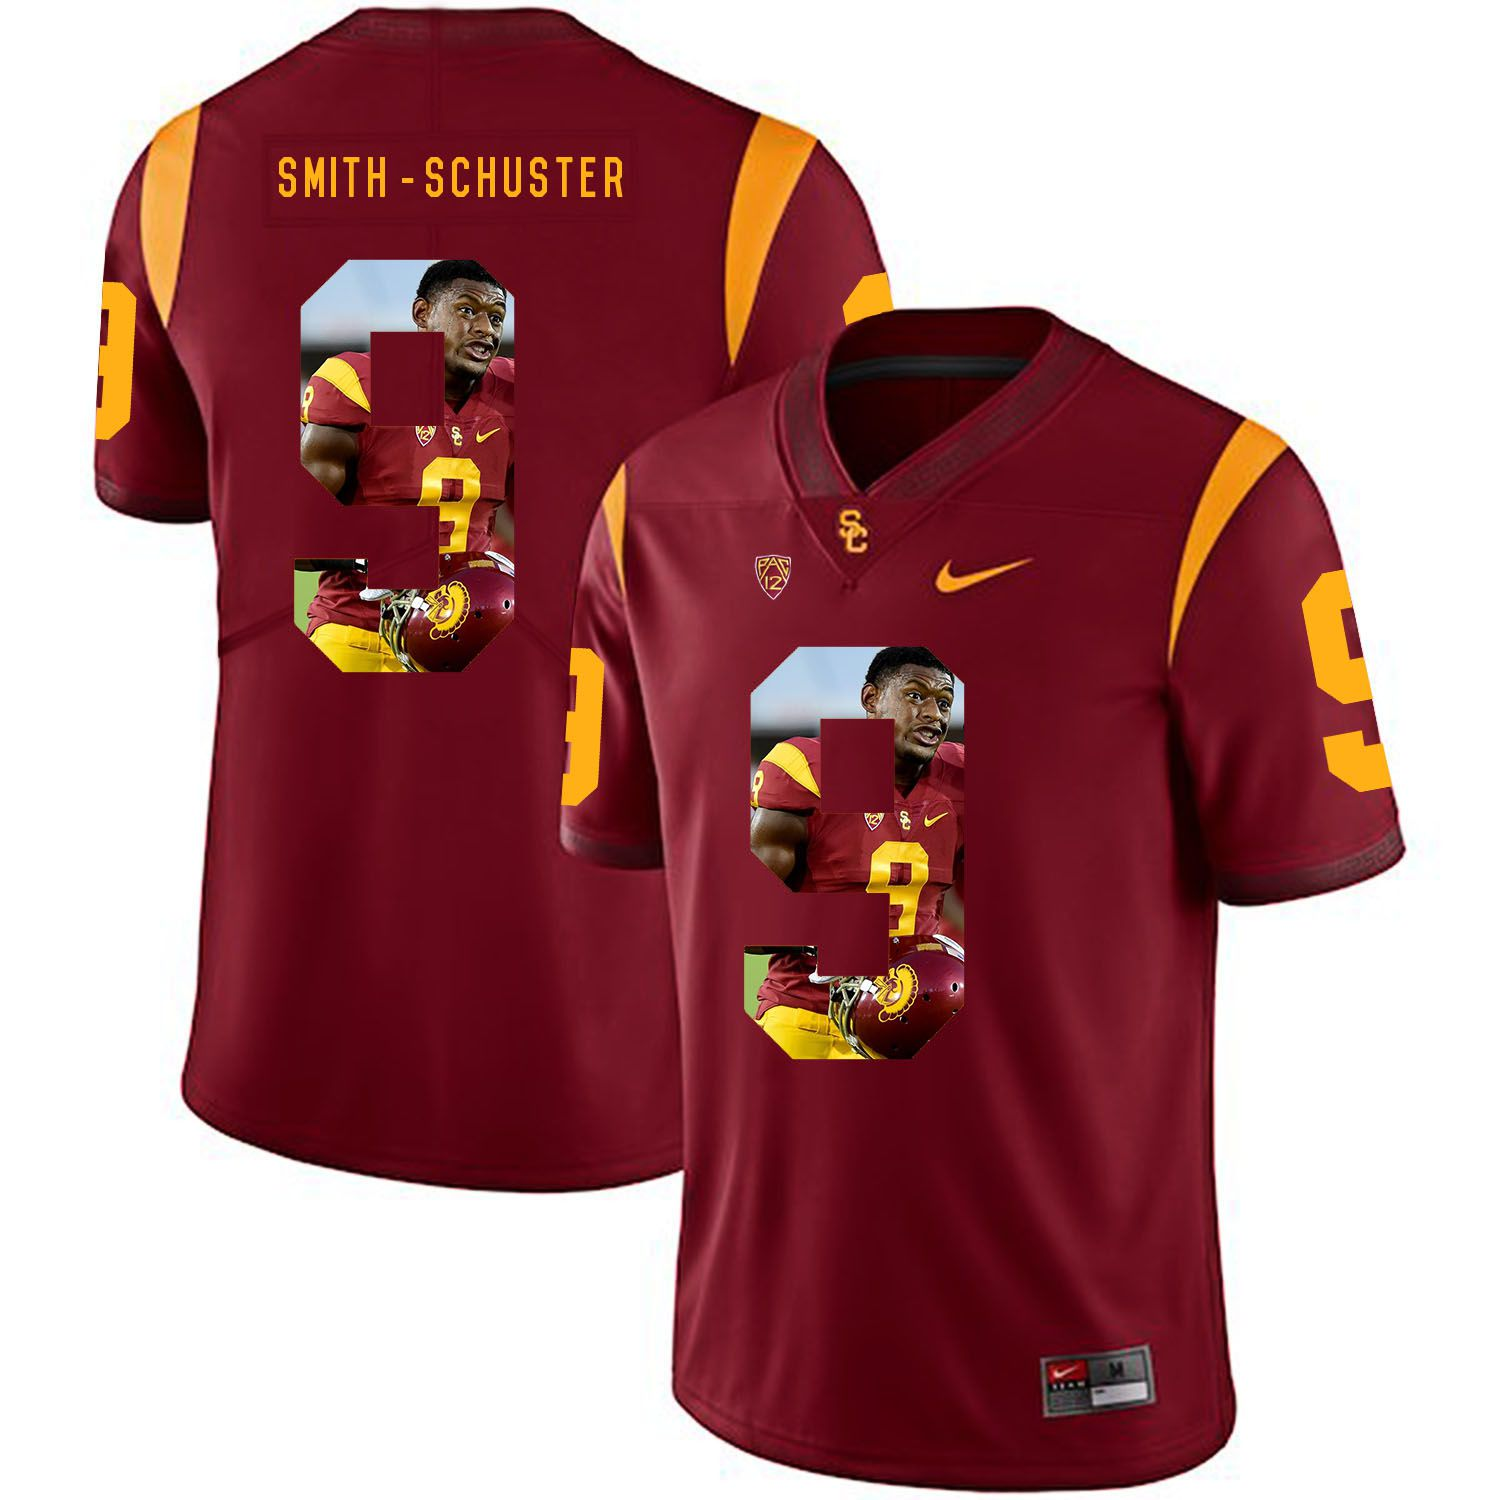 Men USC Trojans 9 Smith-Schuster Red Fashion Edition Customized NCAA Jerseys